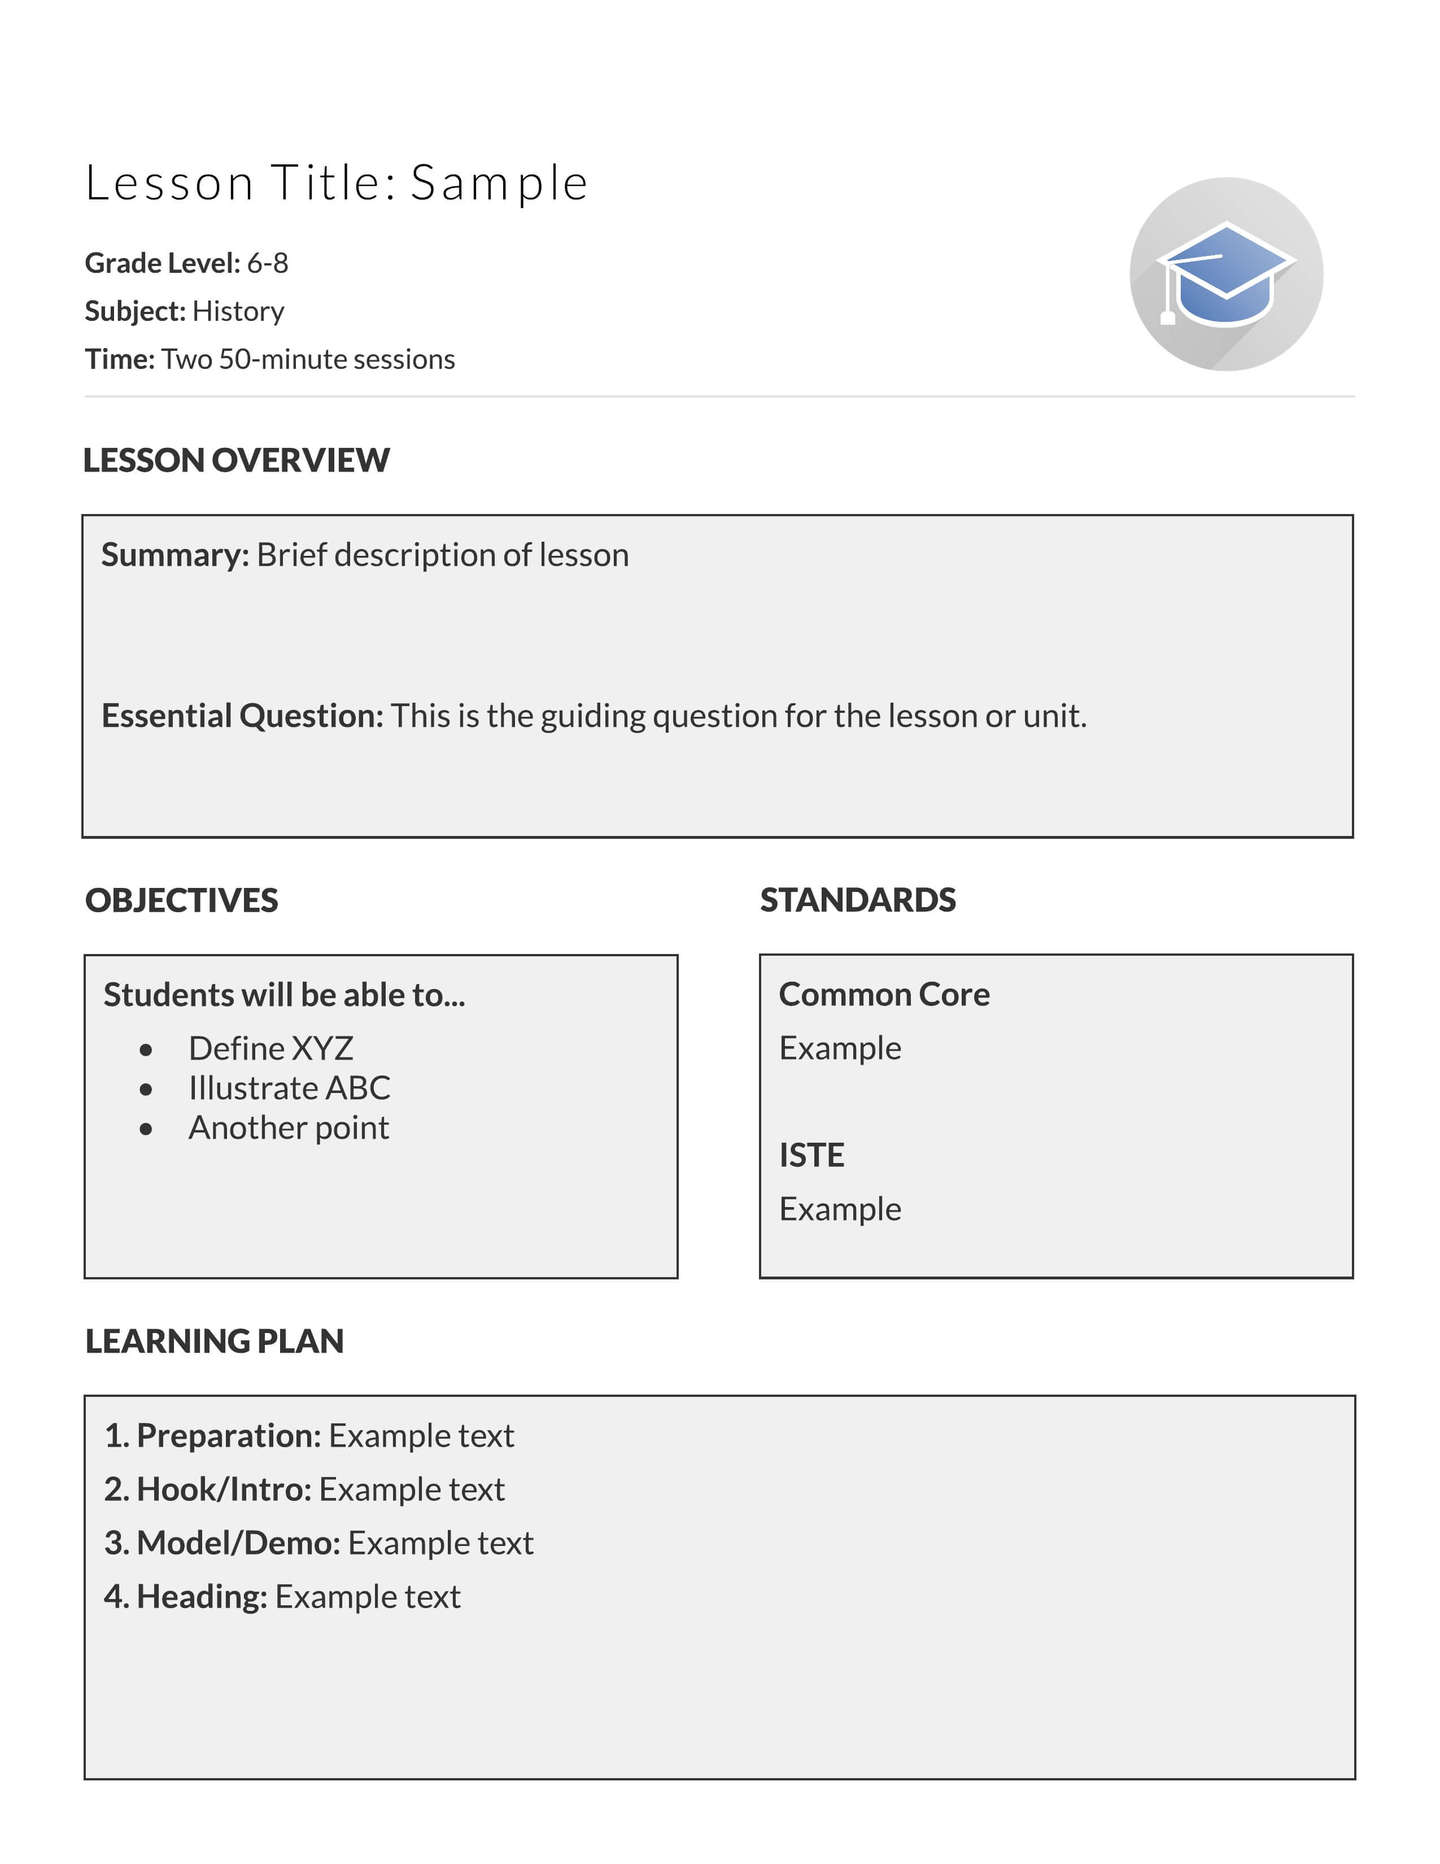 Free Lesson Plan Templates Examples Lucidpress - Sample common core lesson plan template